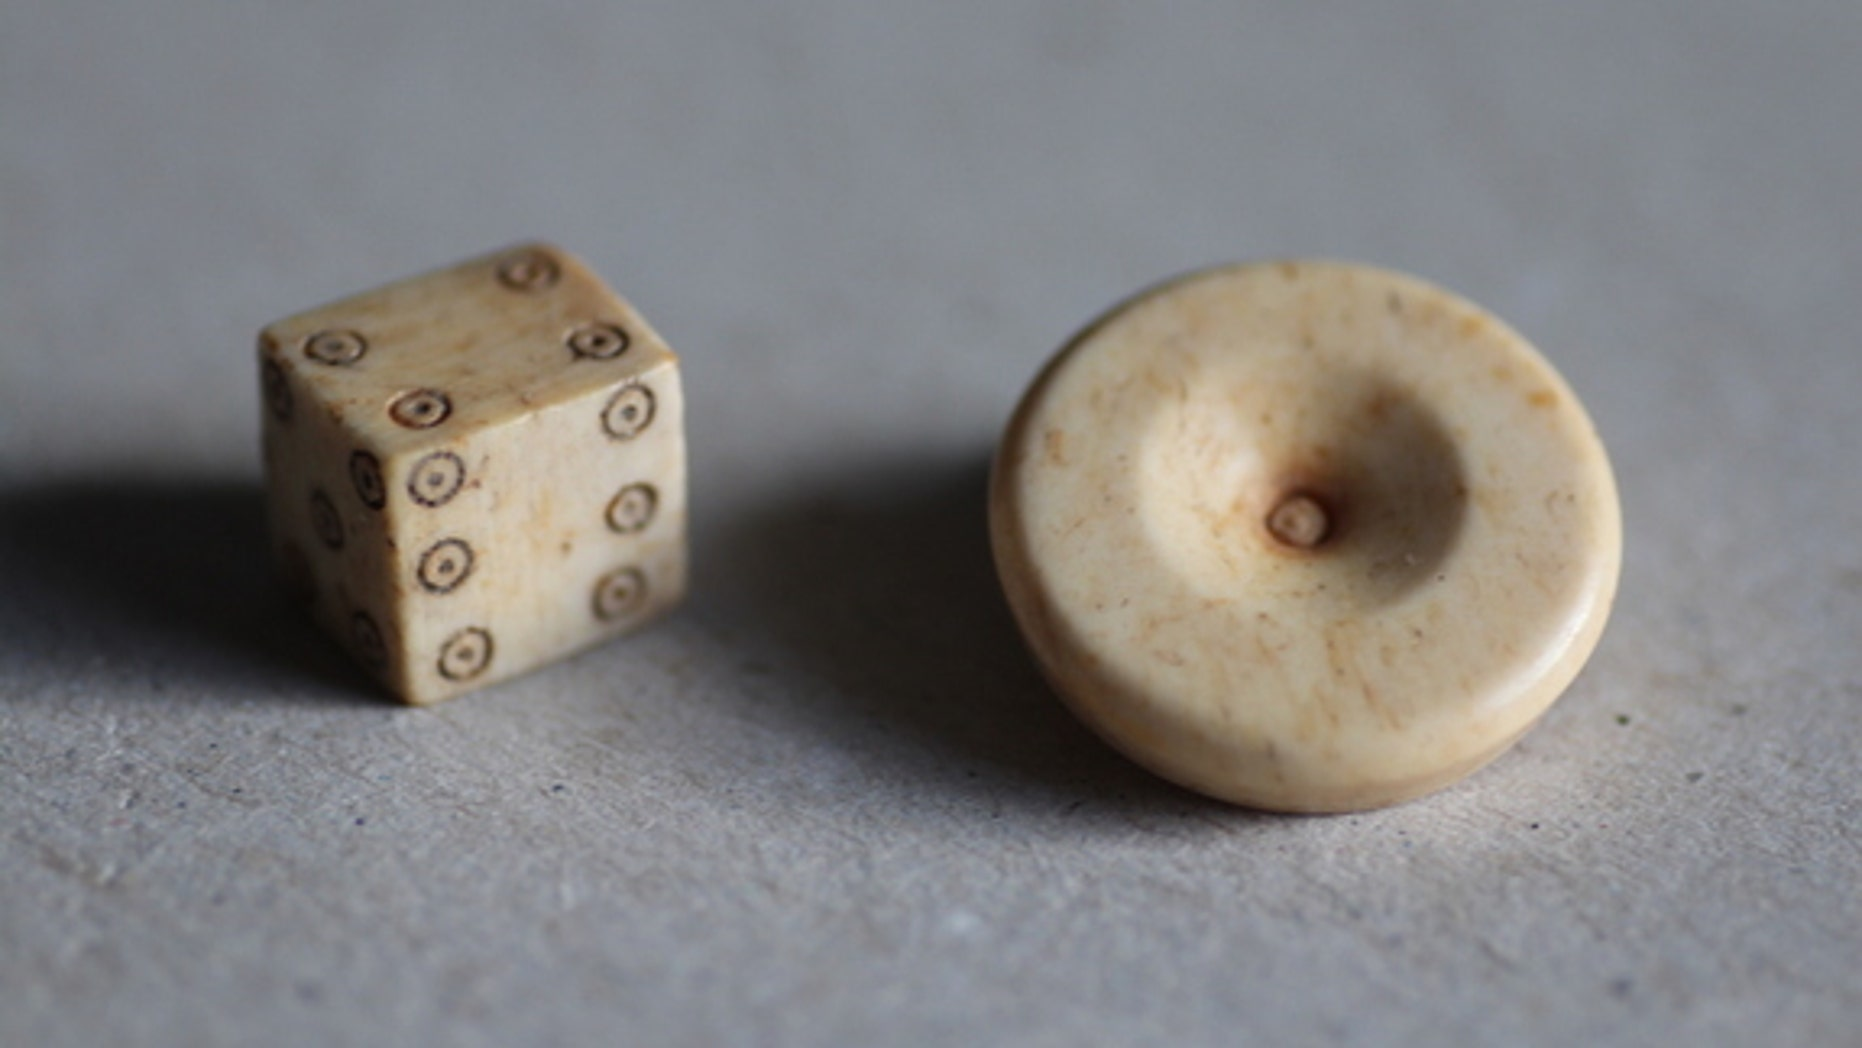 Dice design has changed very little since Roman times. Researchers found a gaming piece and die during excavations of the Roman settlement.